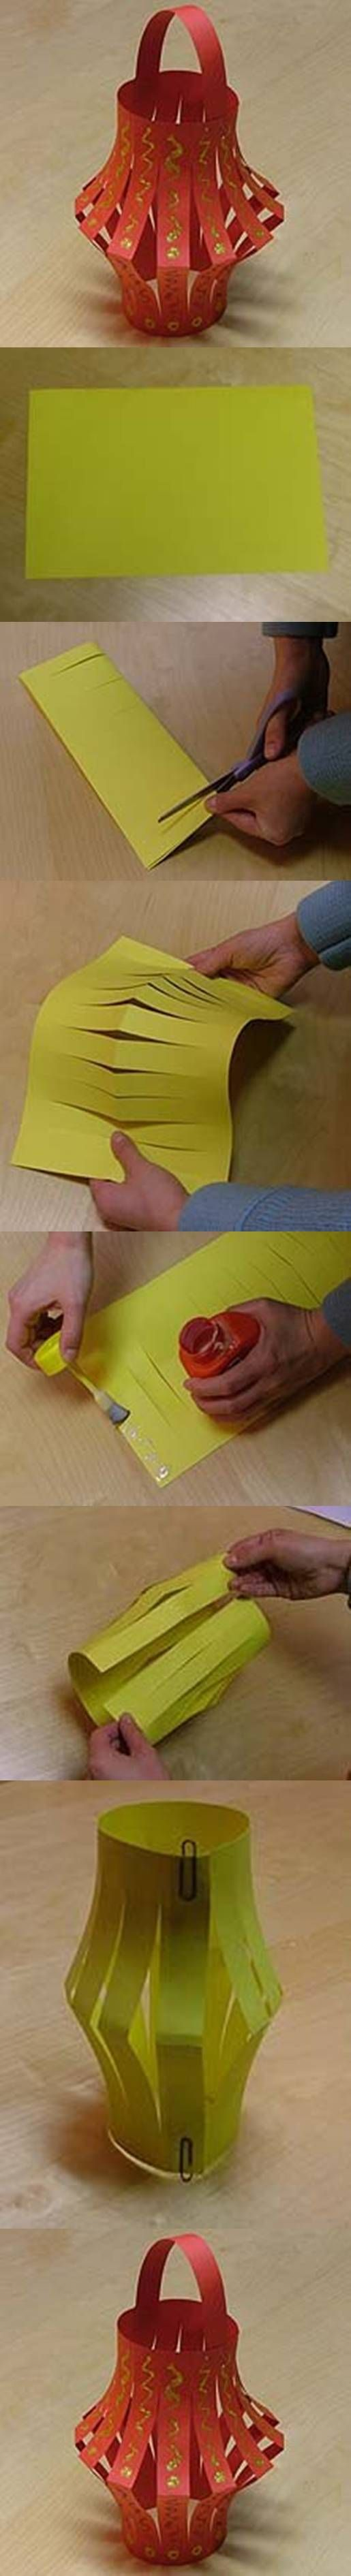 DIY Paper Lantern DIY Projects | UsefulDIY.com Follow Us on Facebook == http://www.facebook.com/UsefulDiy